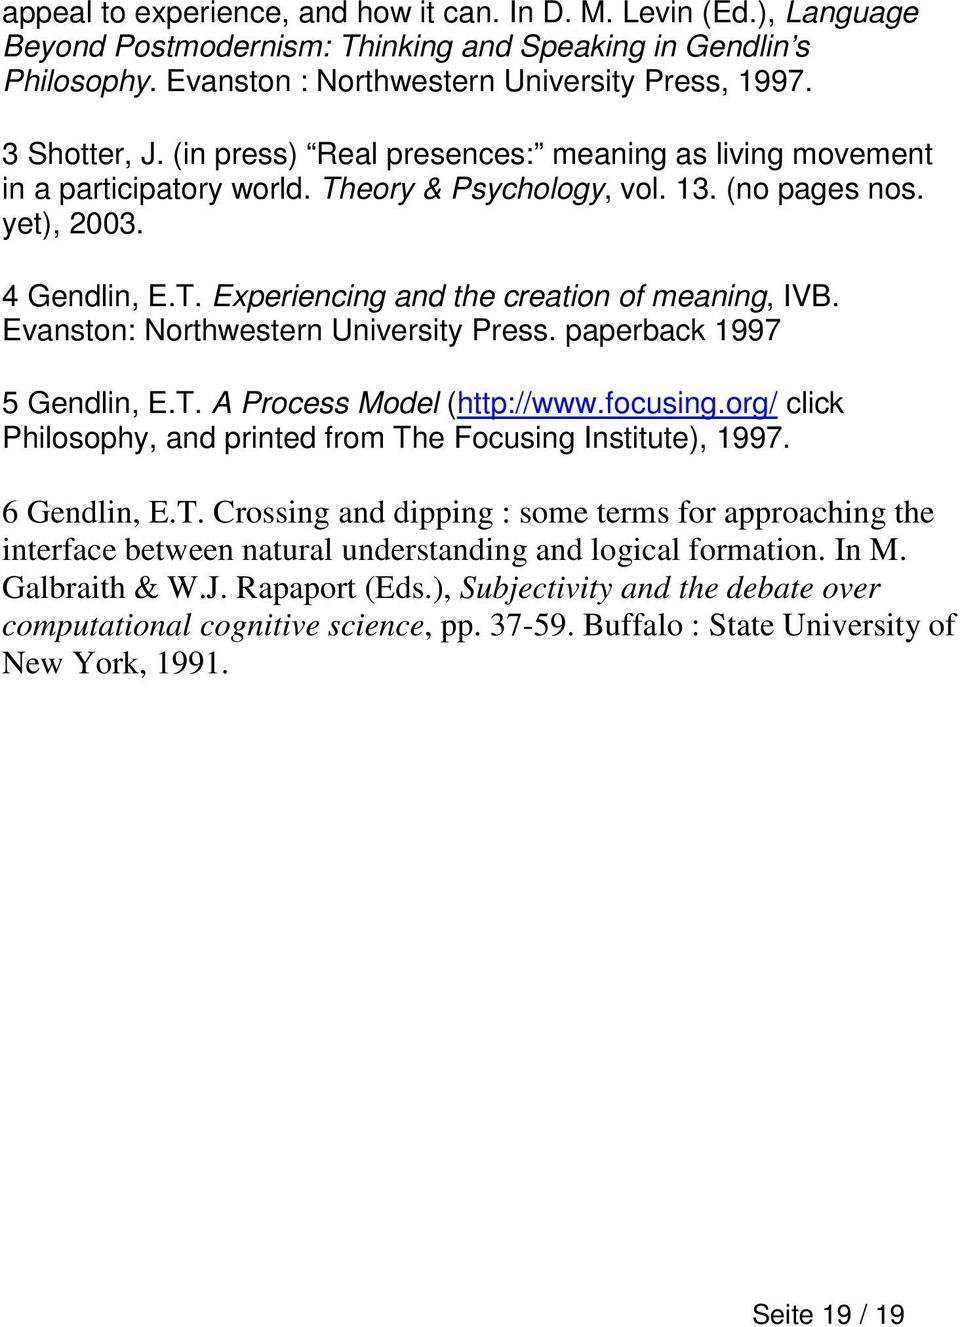 Evanston: Northwestern University Press. paperback 1997 5 Gendlin, E.T. A Process Model (http://www.focusing.org/ click Philosophy, and printed from The Focusing Institute), 1997. 6 Gendlin, E.T. Crossing and dipping : some terms for approaching the interface between natural understanding and logical formation.